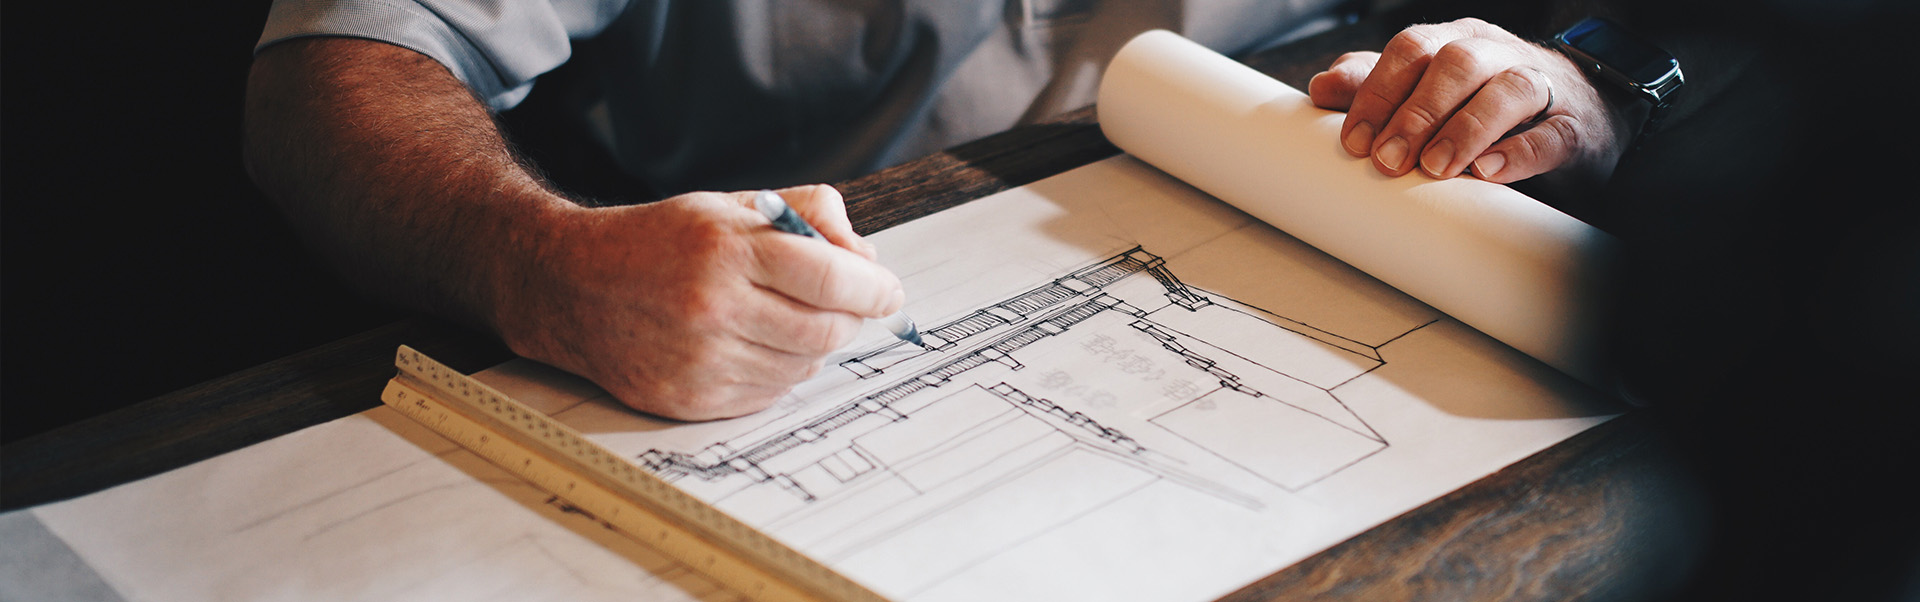 diploma of building design and drafting student